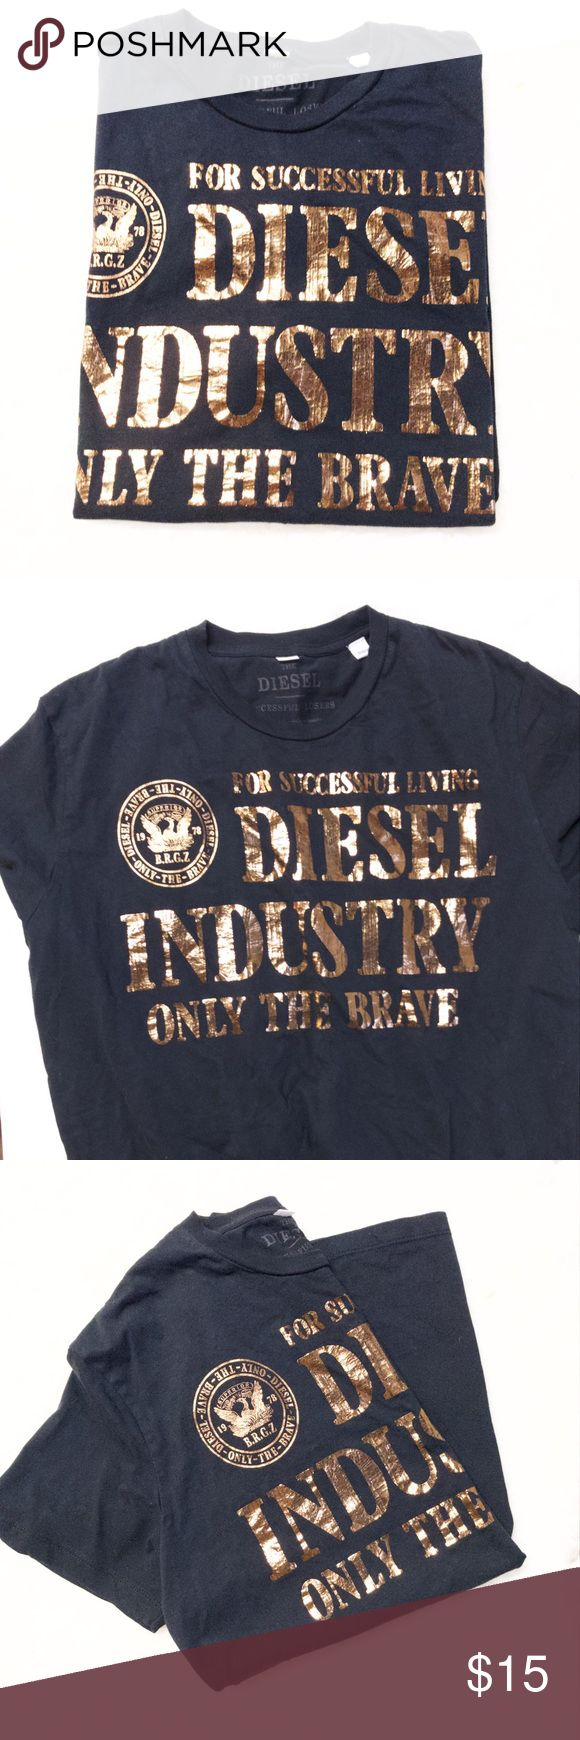 Large black and gold Diesel T-Shirt Great condition, no flaws, measurements included in pictures.  No trades Diesel Shirts Tees - Short Sleeve